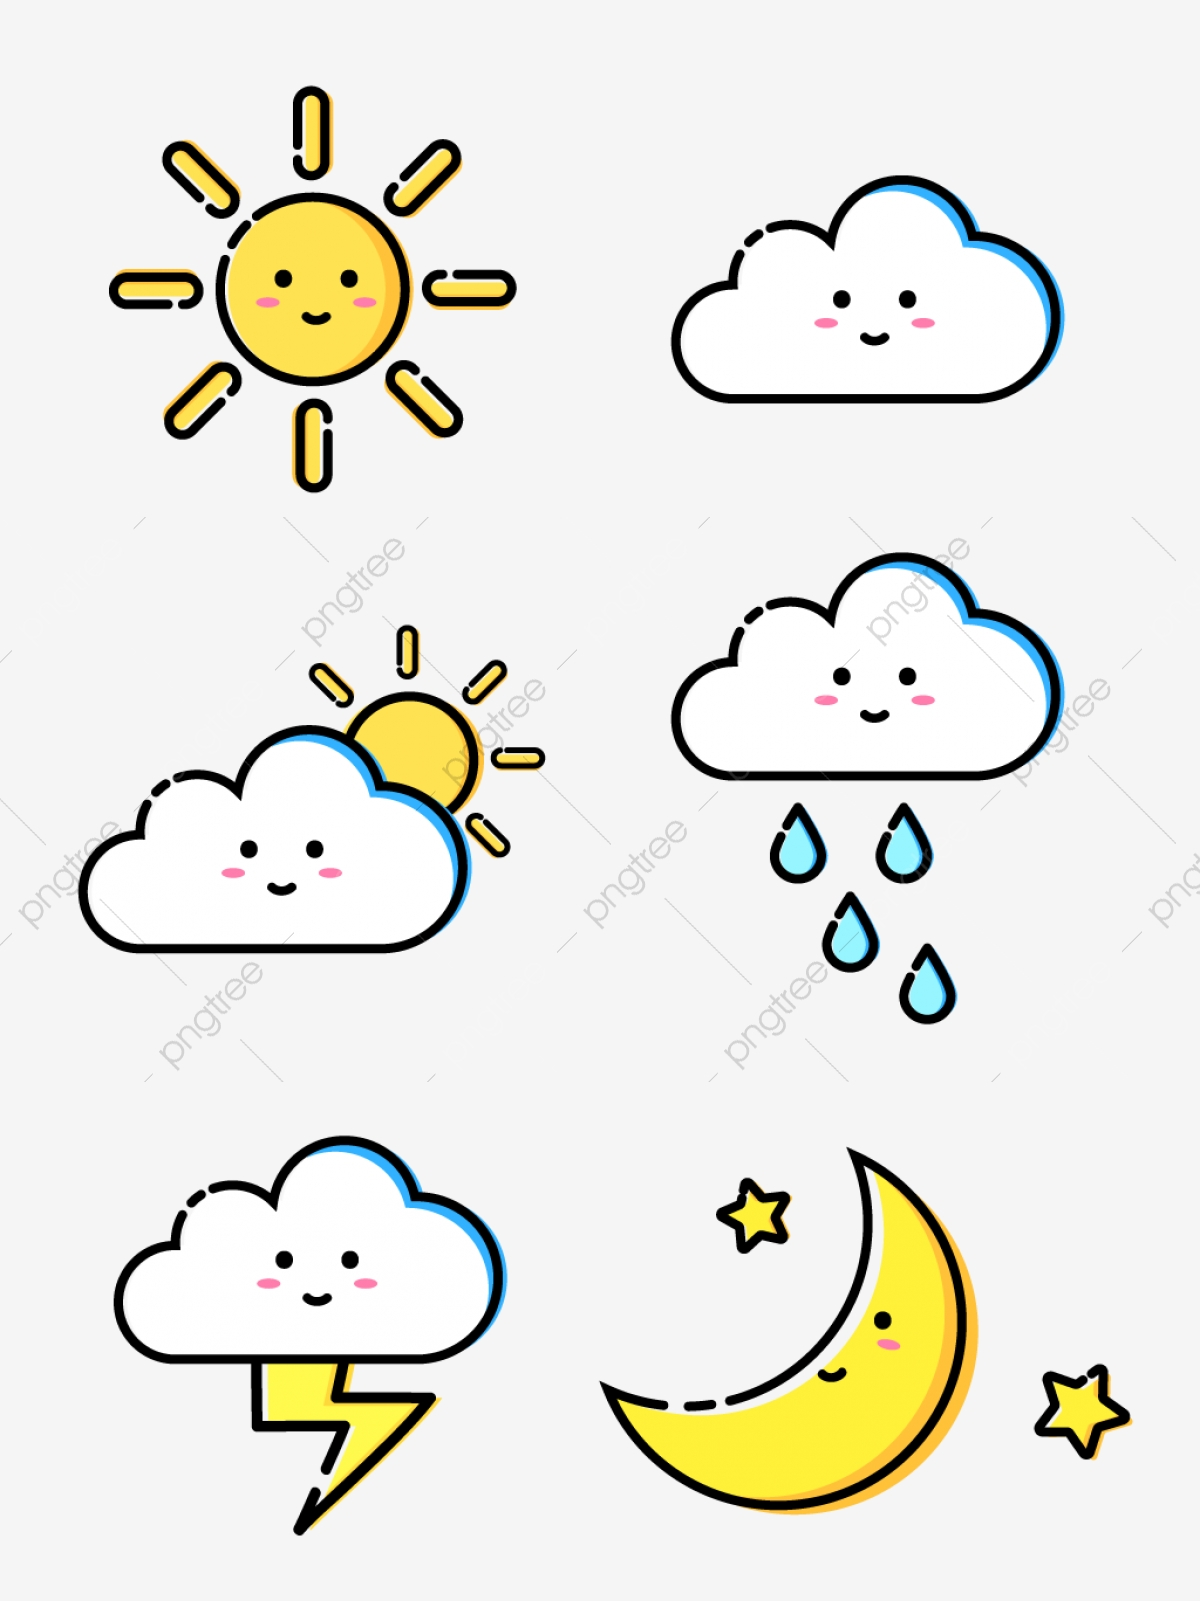 Mbe Style Simple And Cute Weather Icon For Commercial Use Mbe Mbe Icon Mbe Style Png And Vector With Transparent Background For Free Download